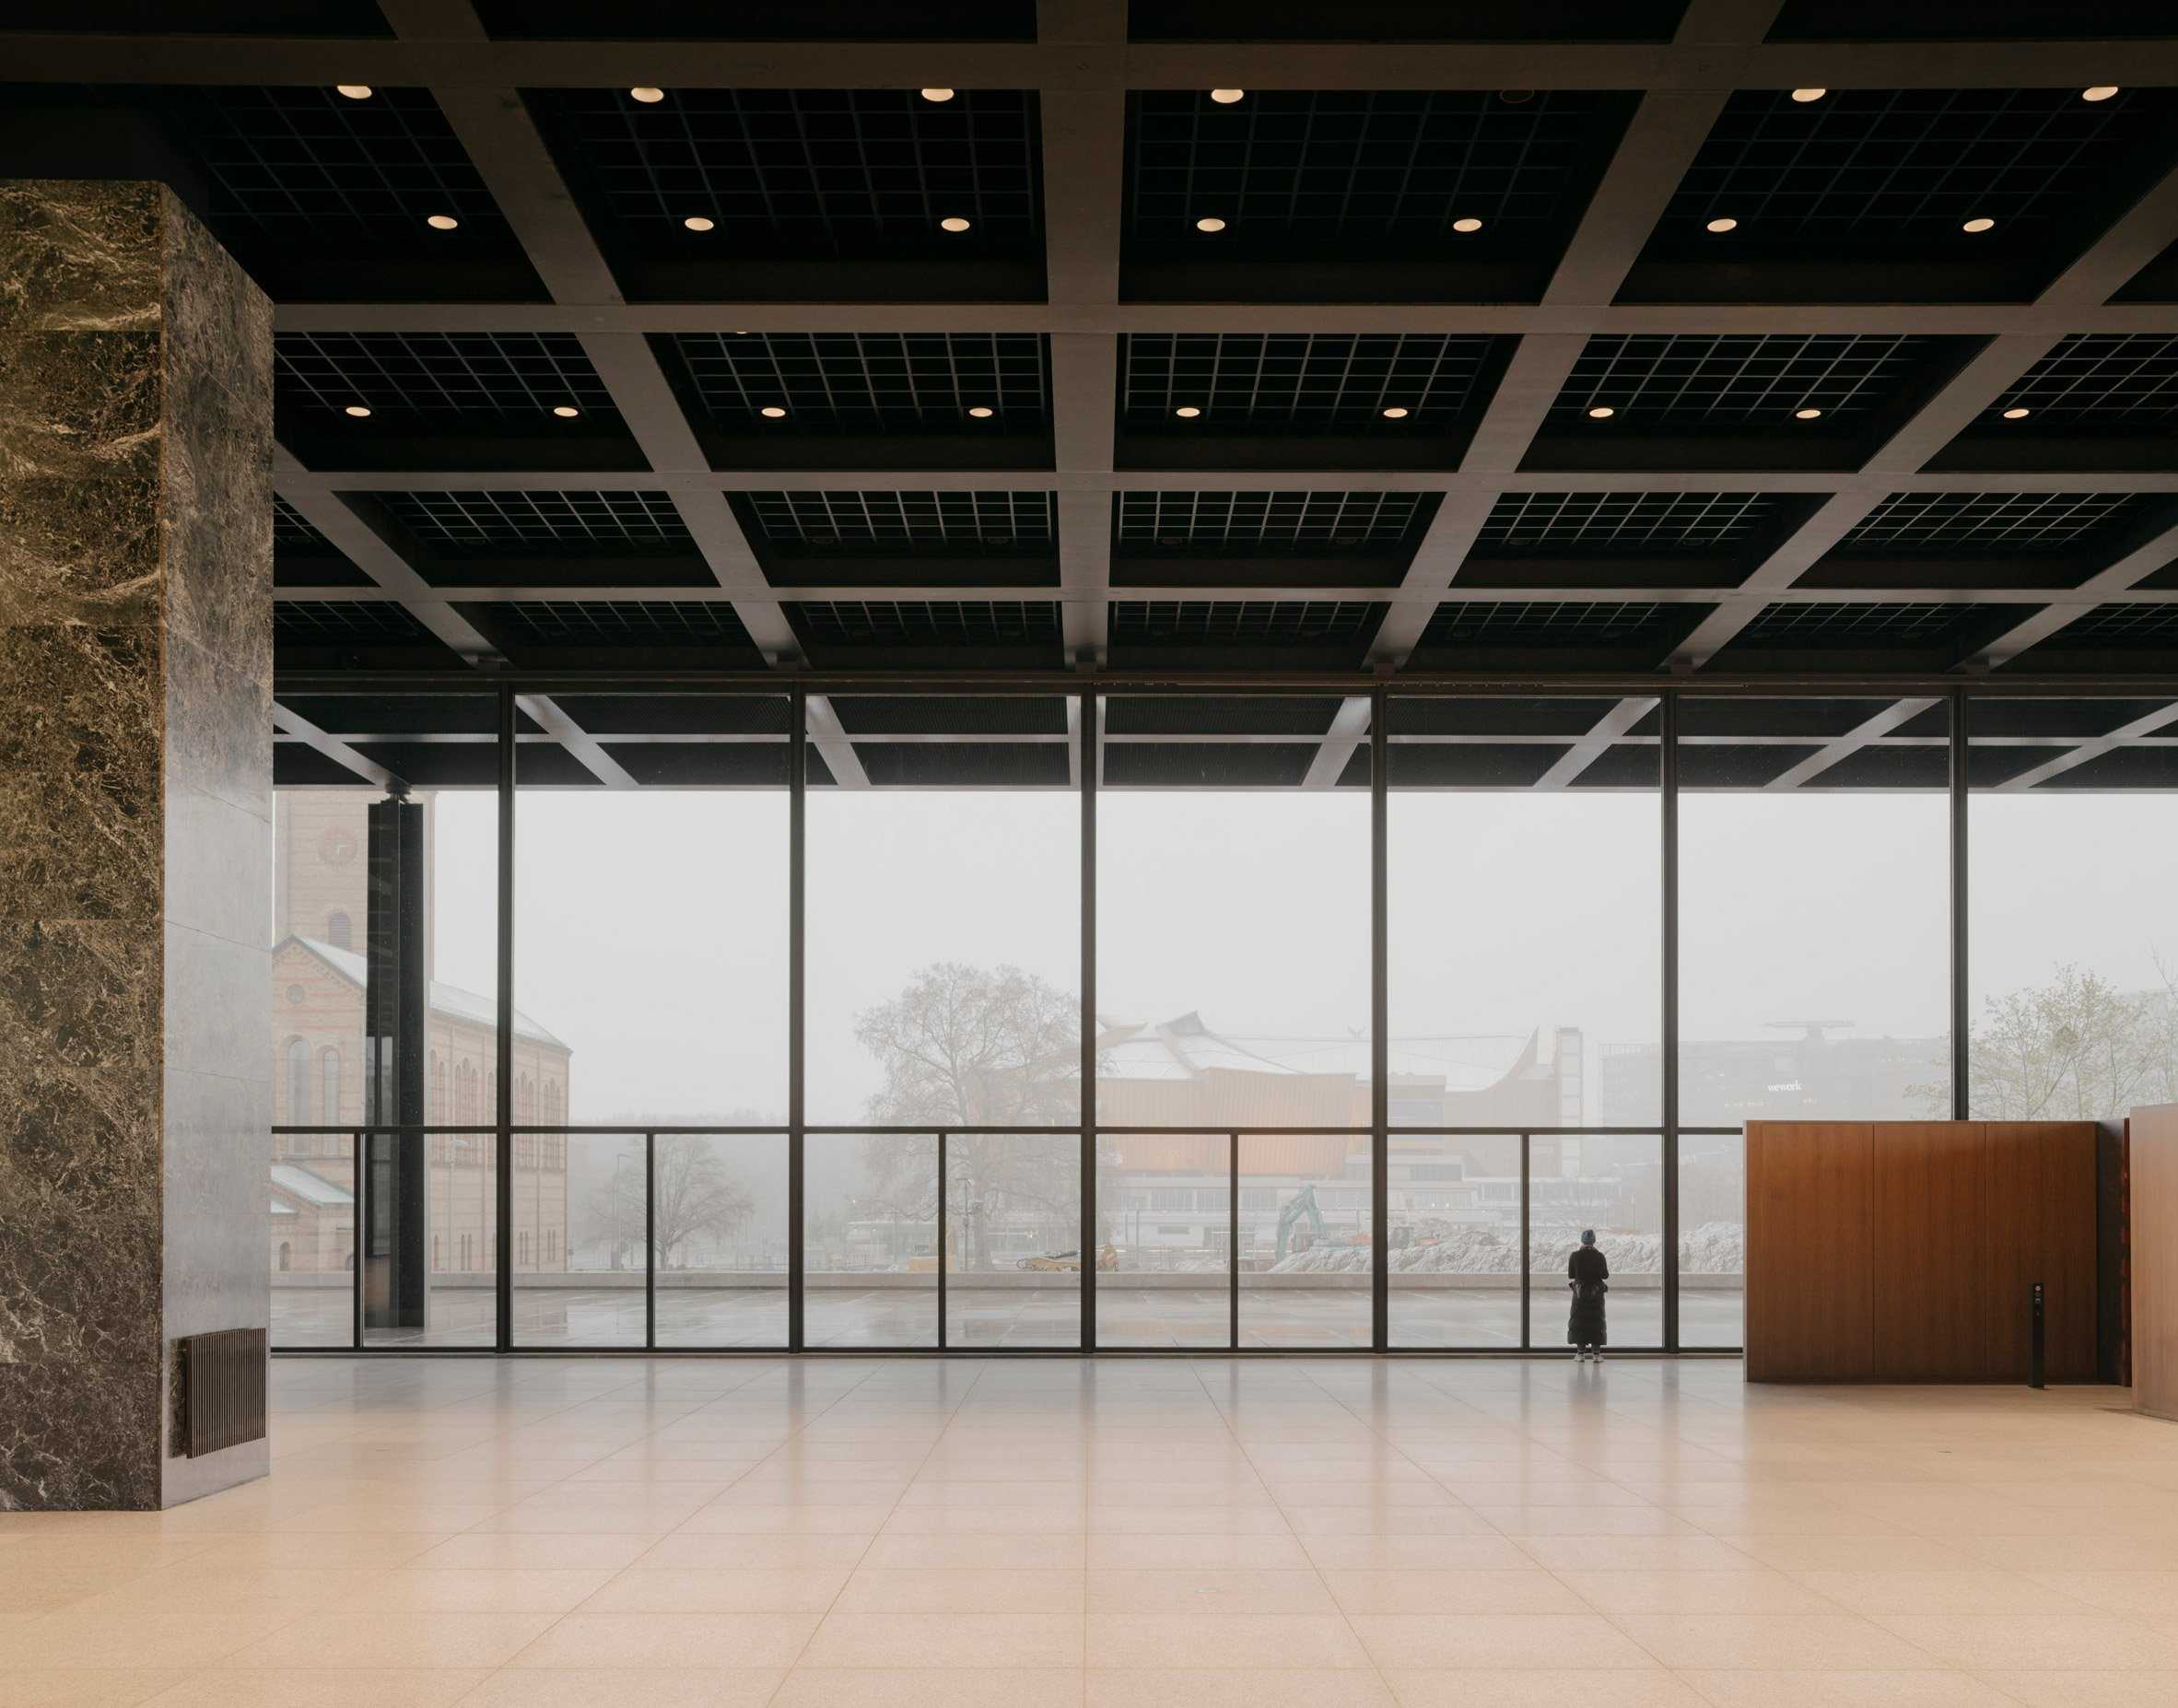 The interiors of a museum by Mies van der Rohe